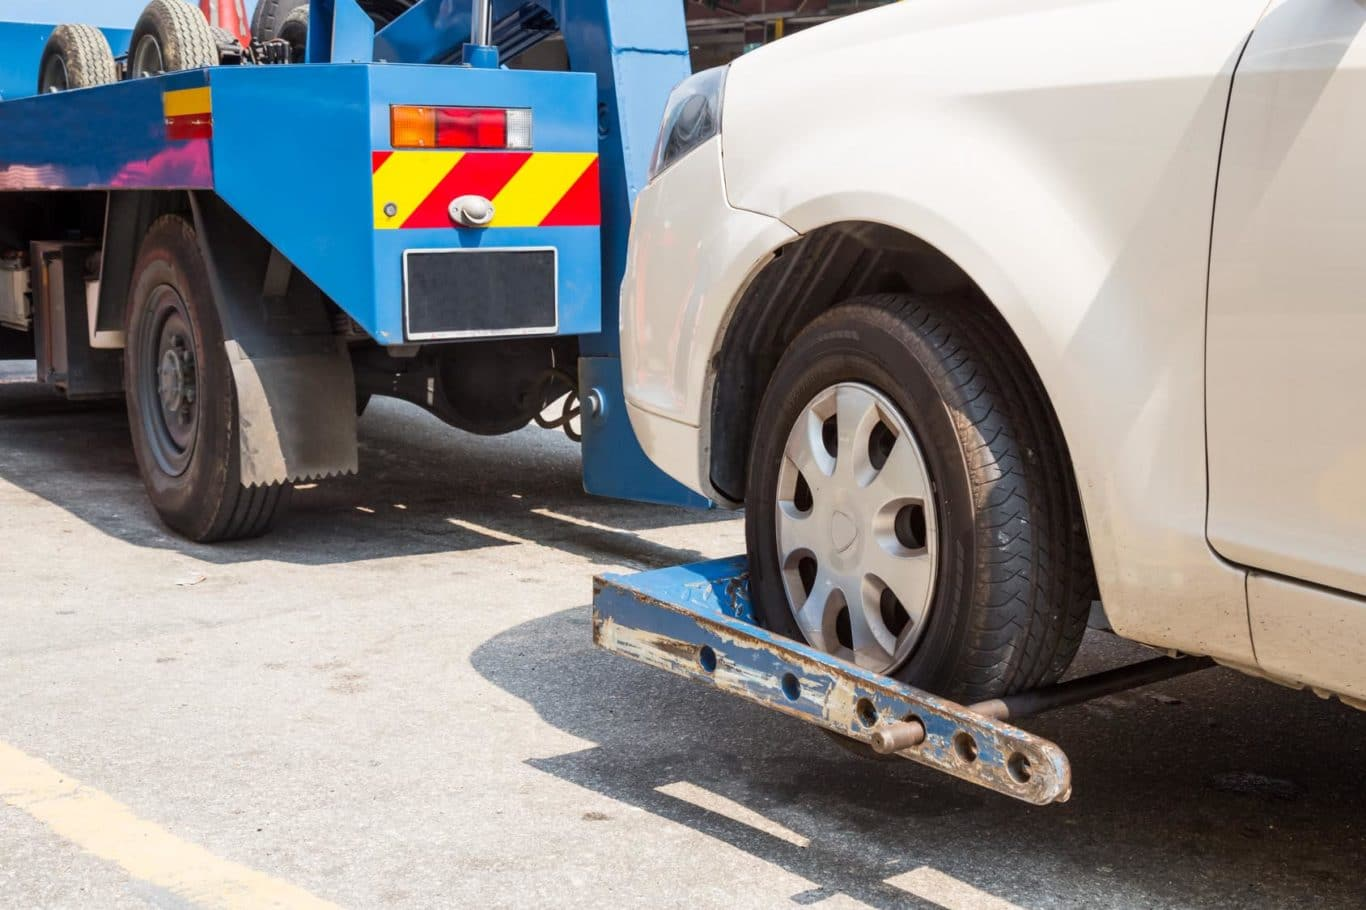 Damastown expert Breakdown Assistance services